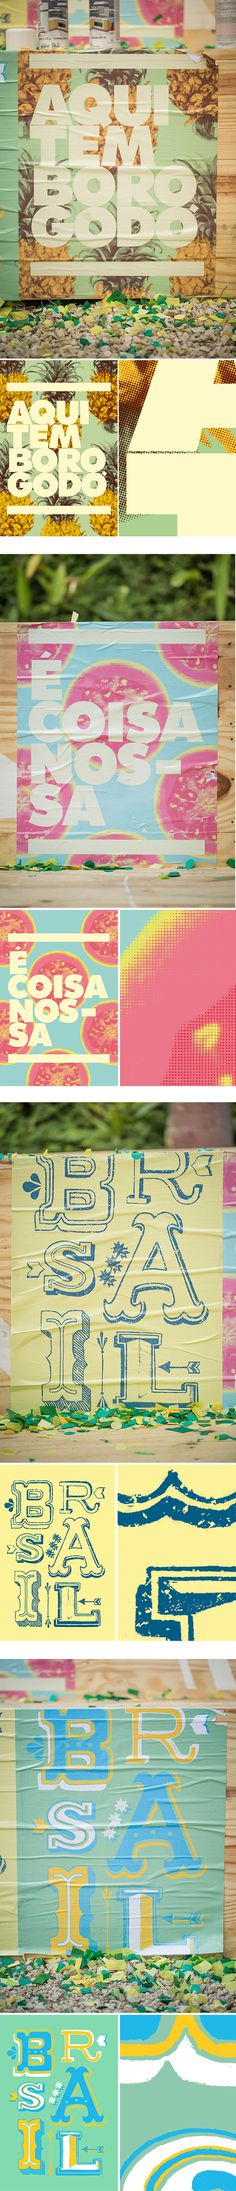 Fifa World Cup 2014 on Behance #lettering #world #fruit #poster #brazil #cup #typography